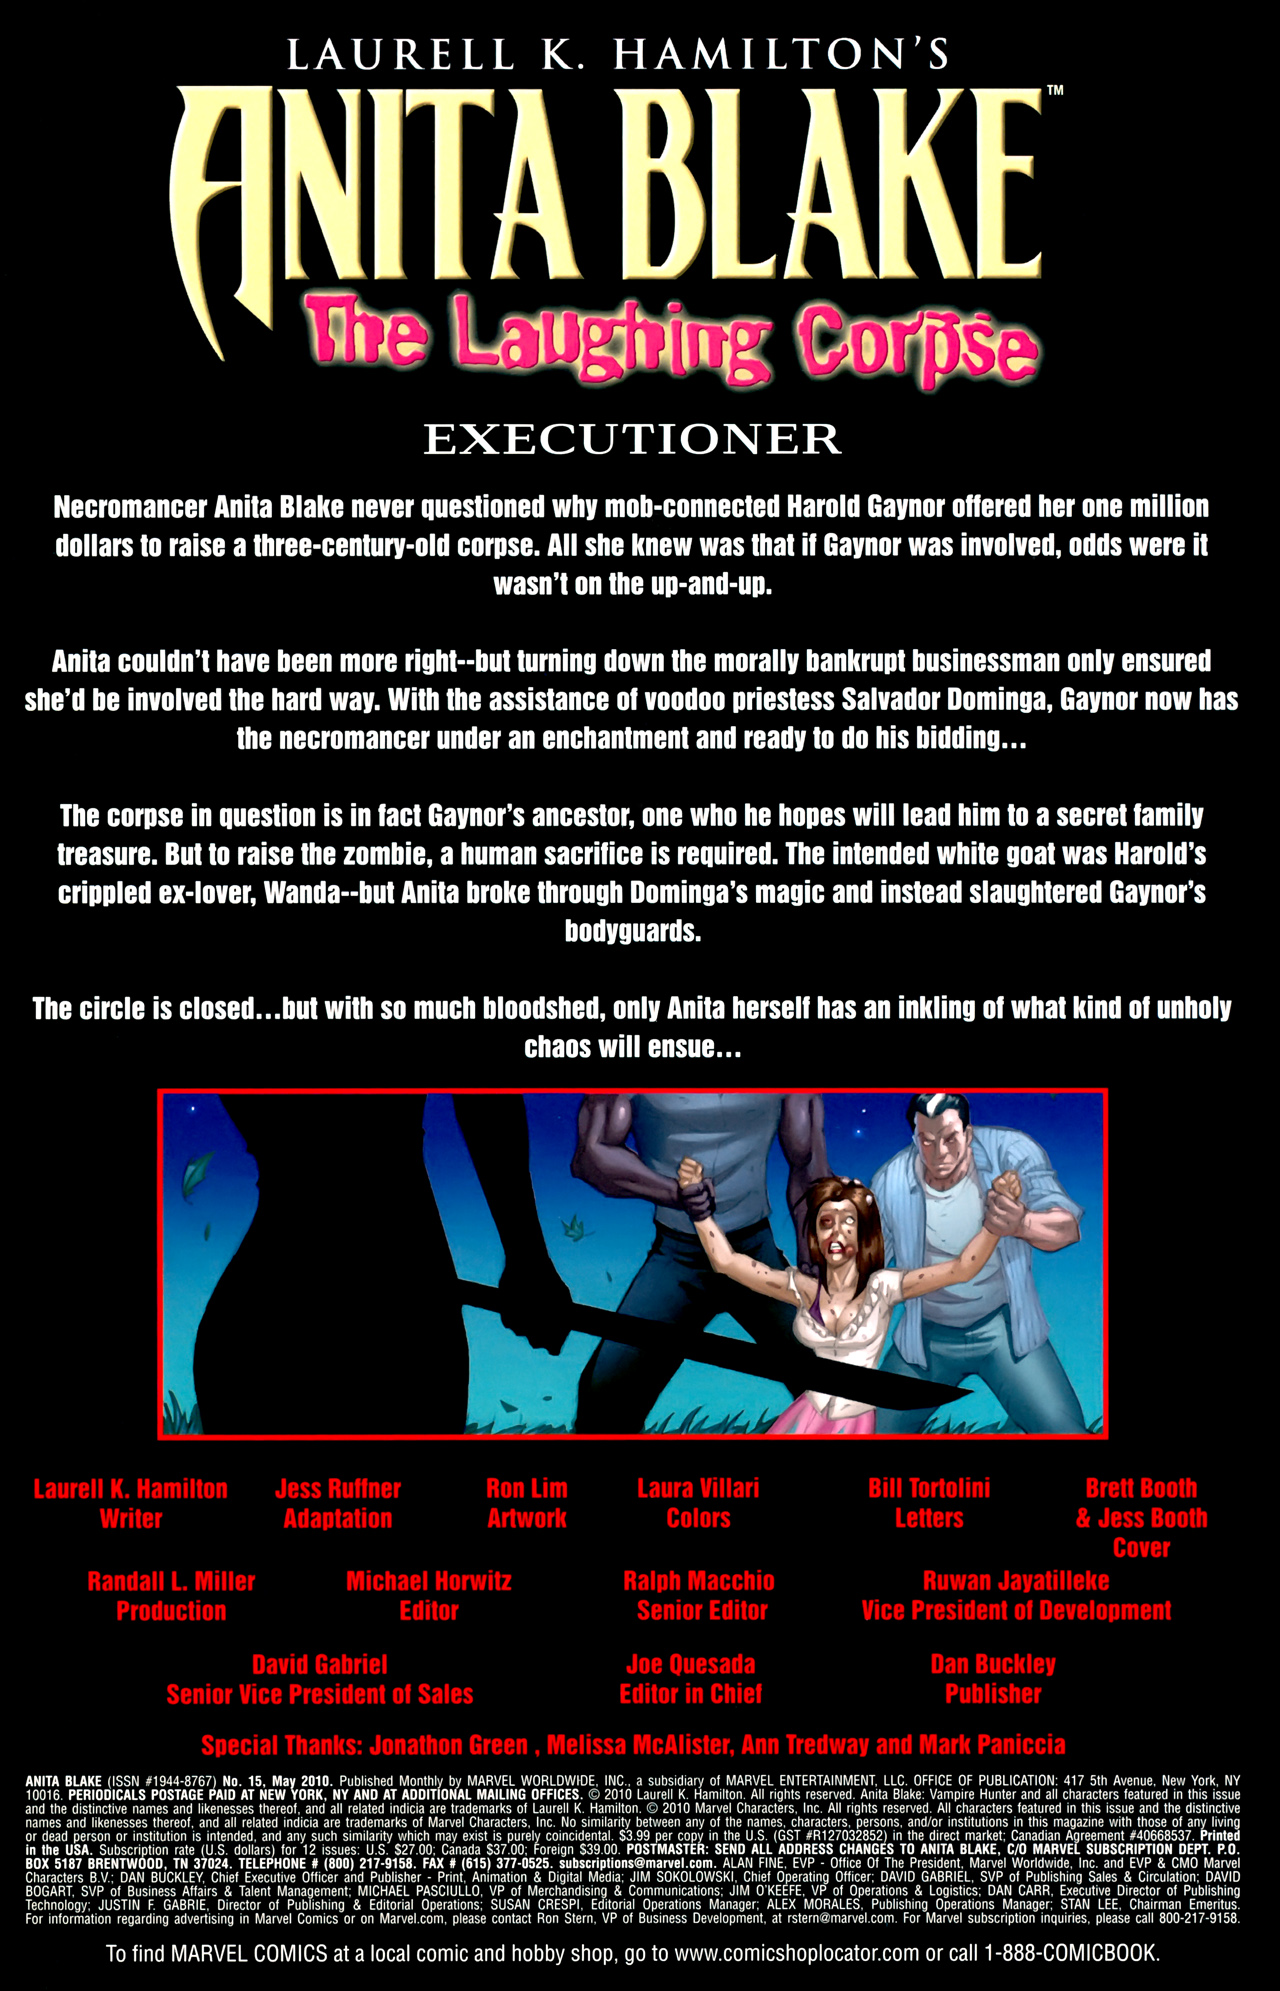 Read online Anita Blake: The Laughing Corpse - Executioner comic -  Issue #5 - 3